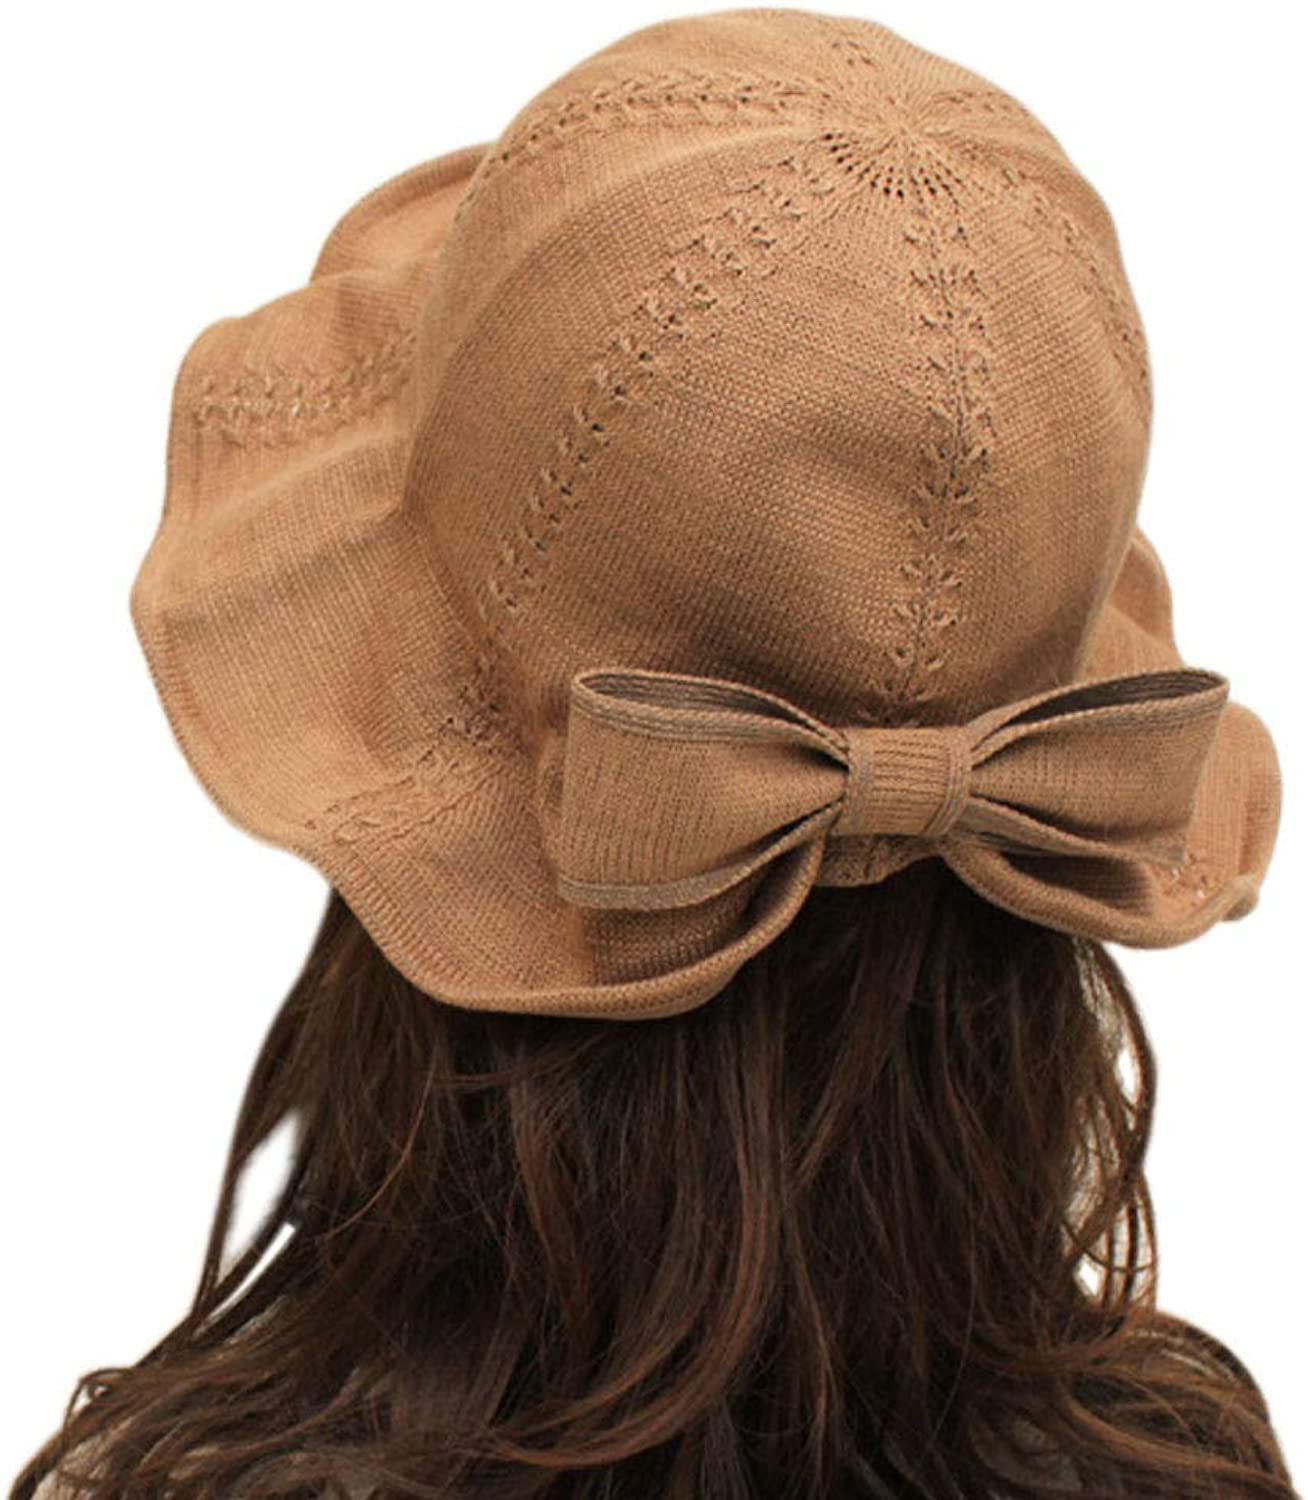 Andy&Esther Cotton Knit Bucket Hat for Women Foldable Floral Sun Hat Stretchy Summer Hats Bowknot